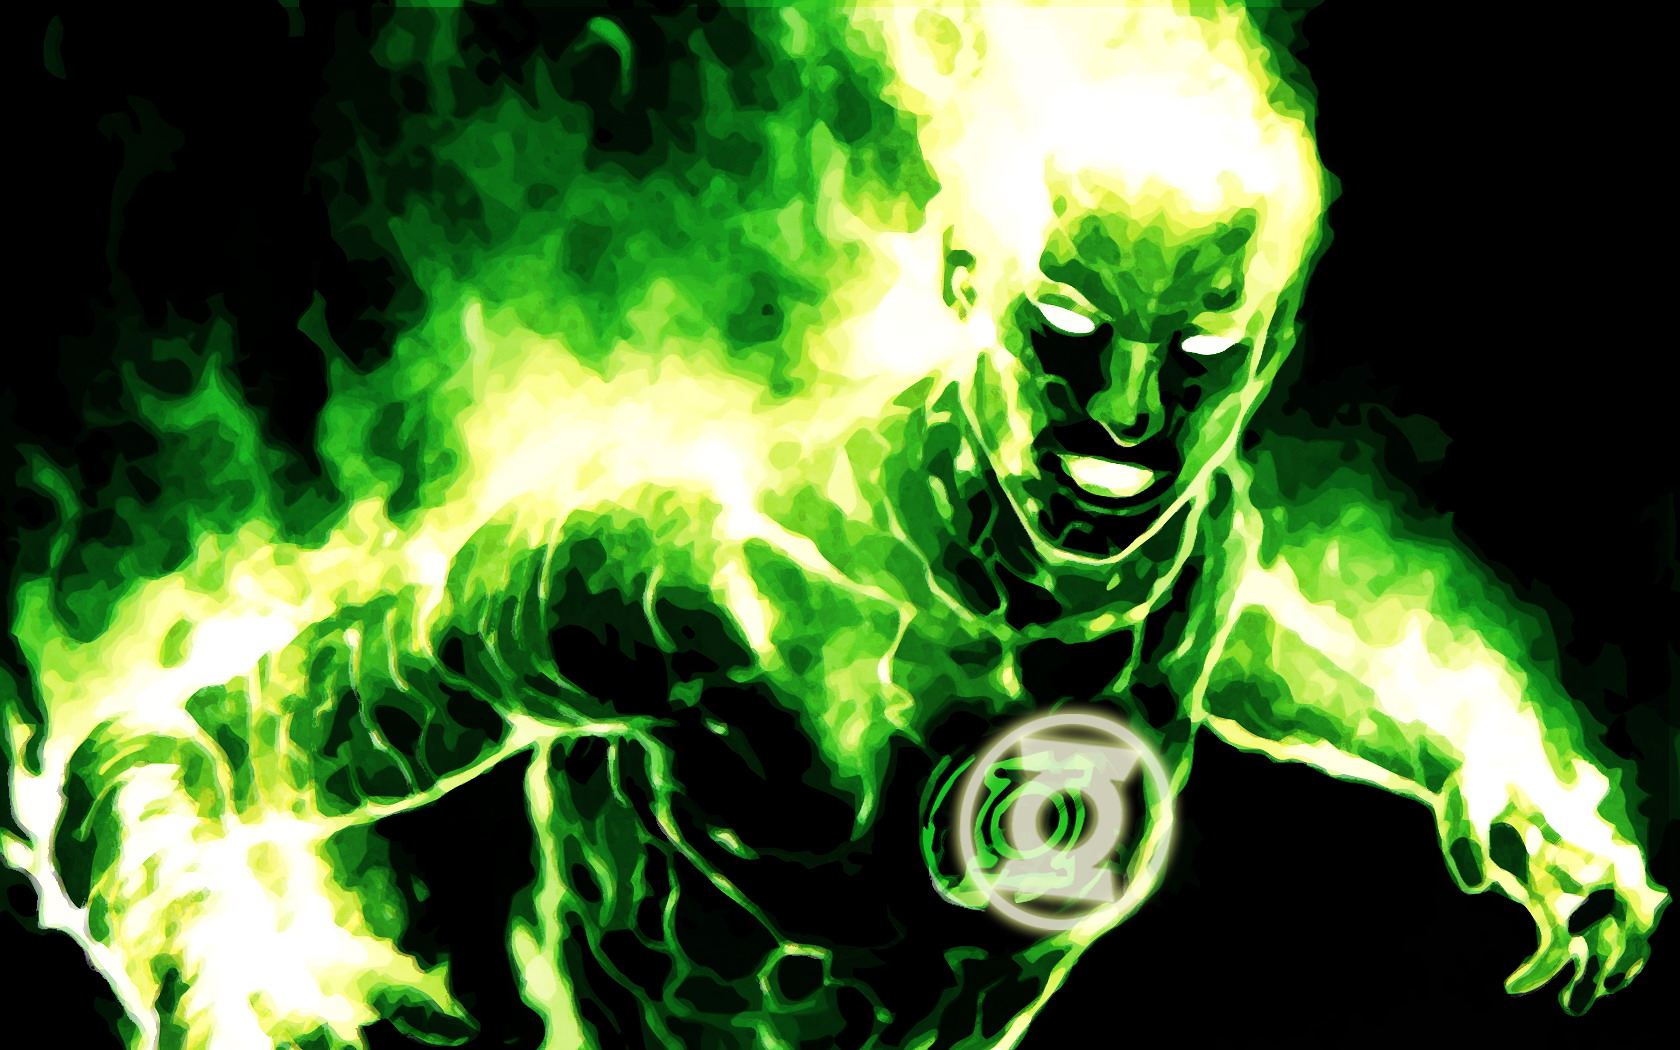 Green Lantern Wallpaper 1680x1050 Green Lantern DC Comics 1680x1050